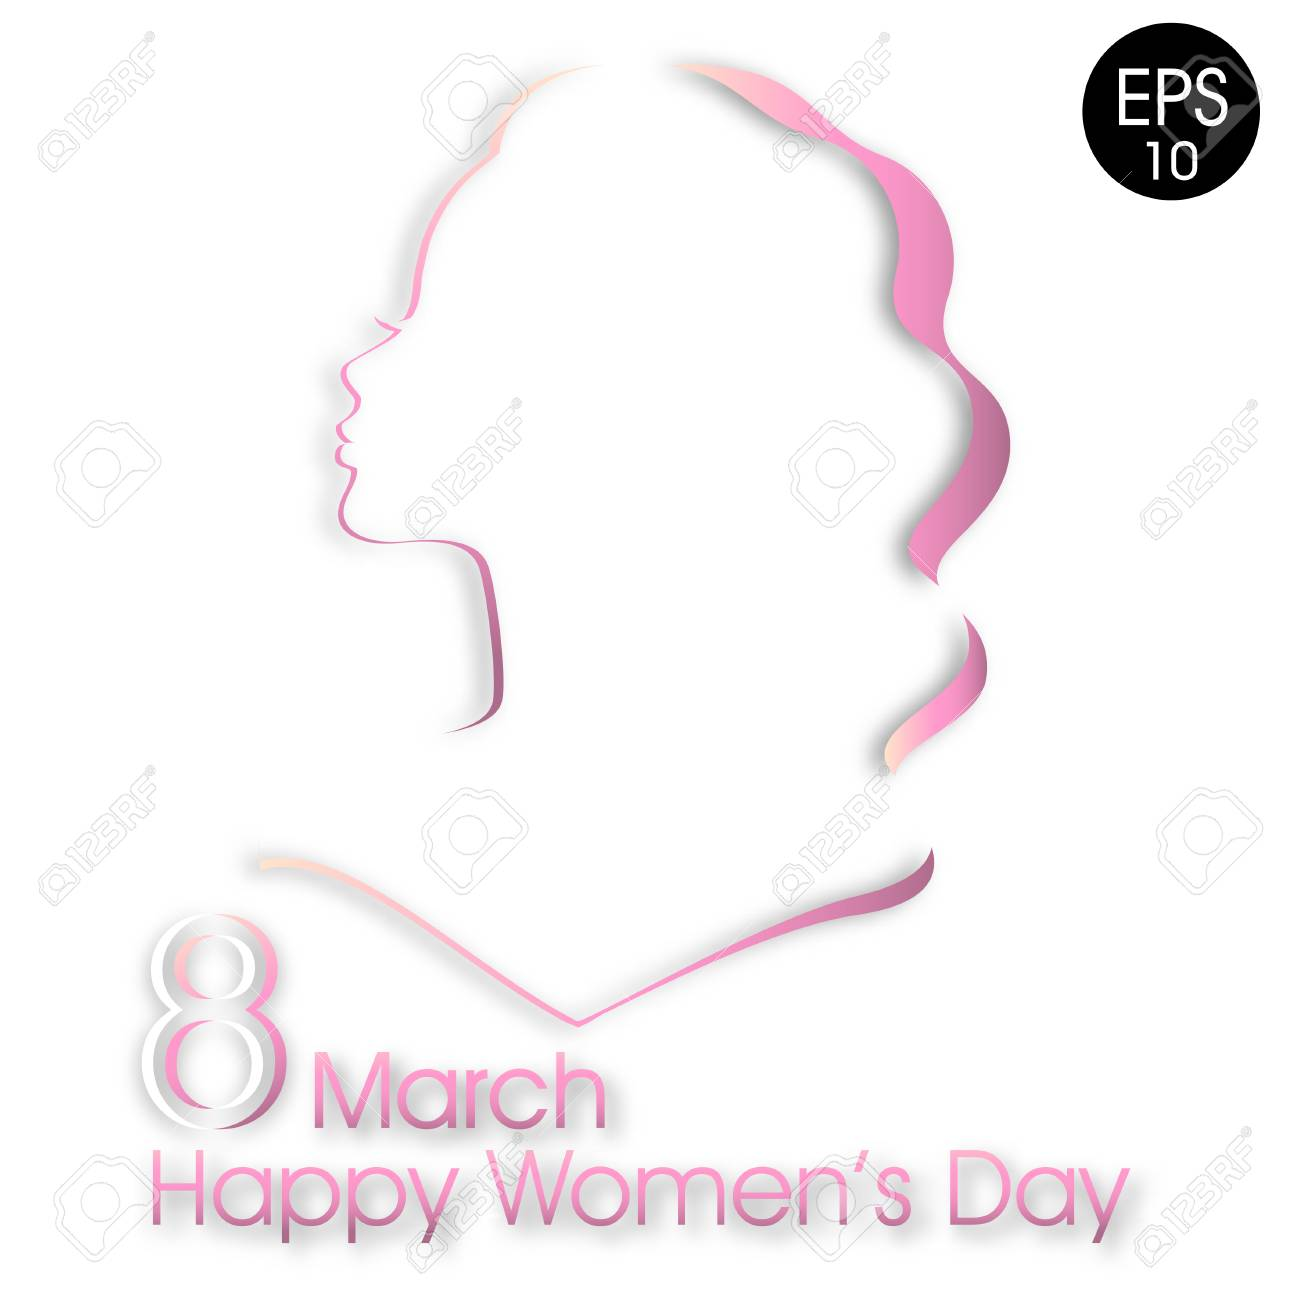 Happy Womens Day Greeting Card Attractive Pink Women Silhouette